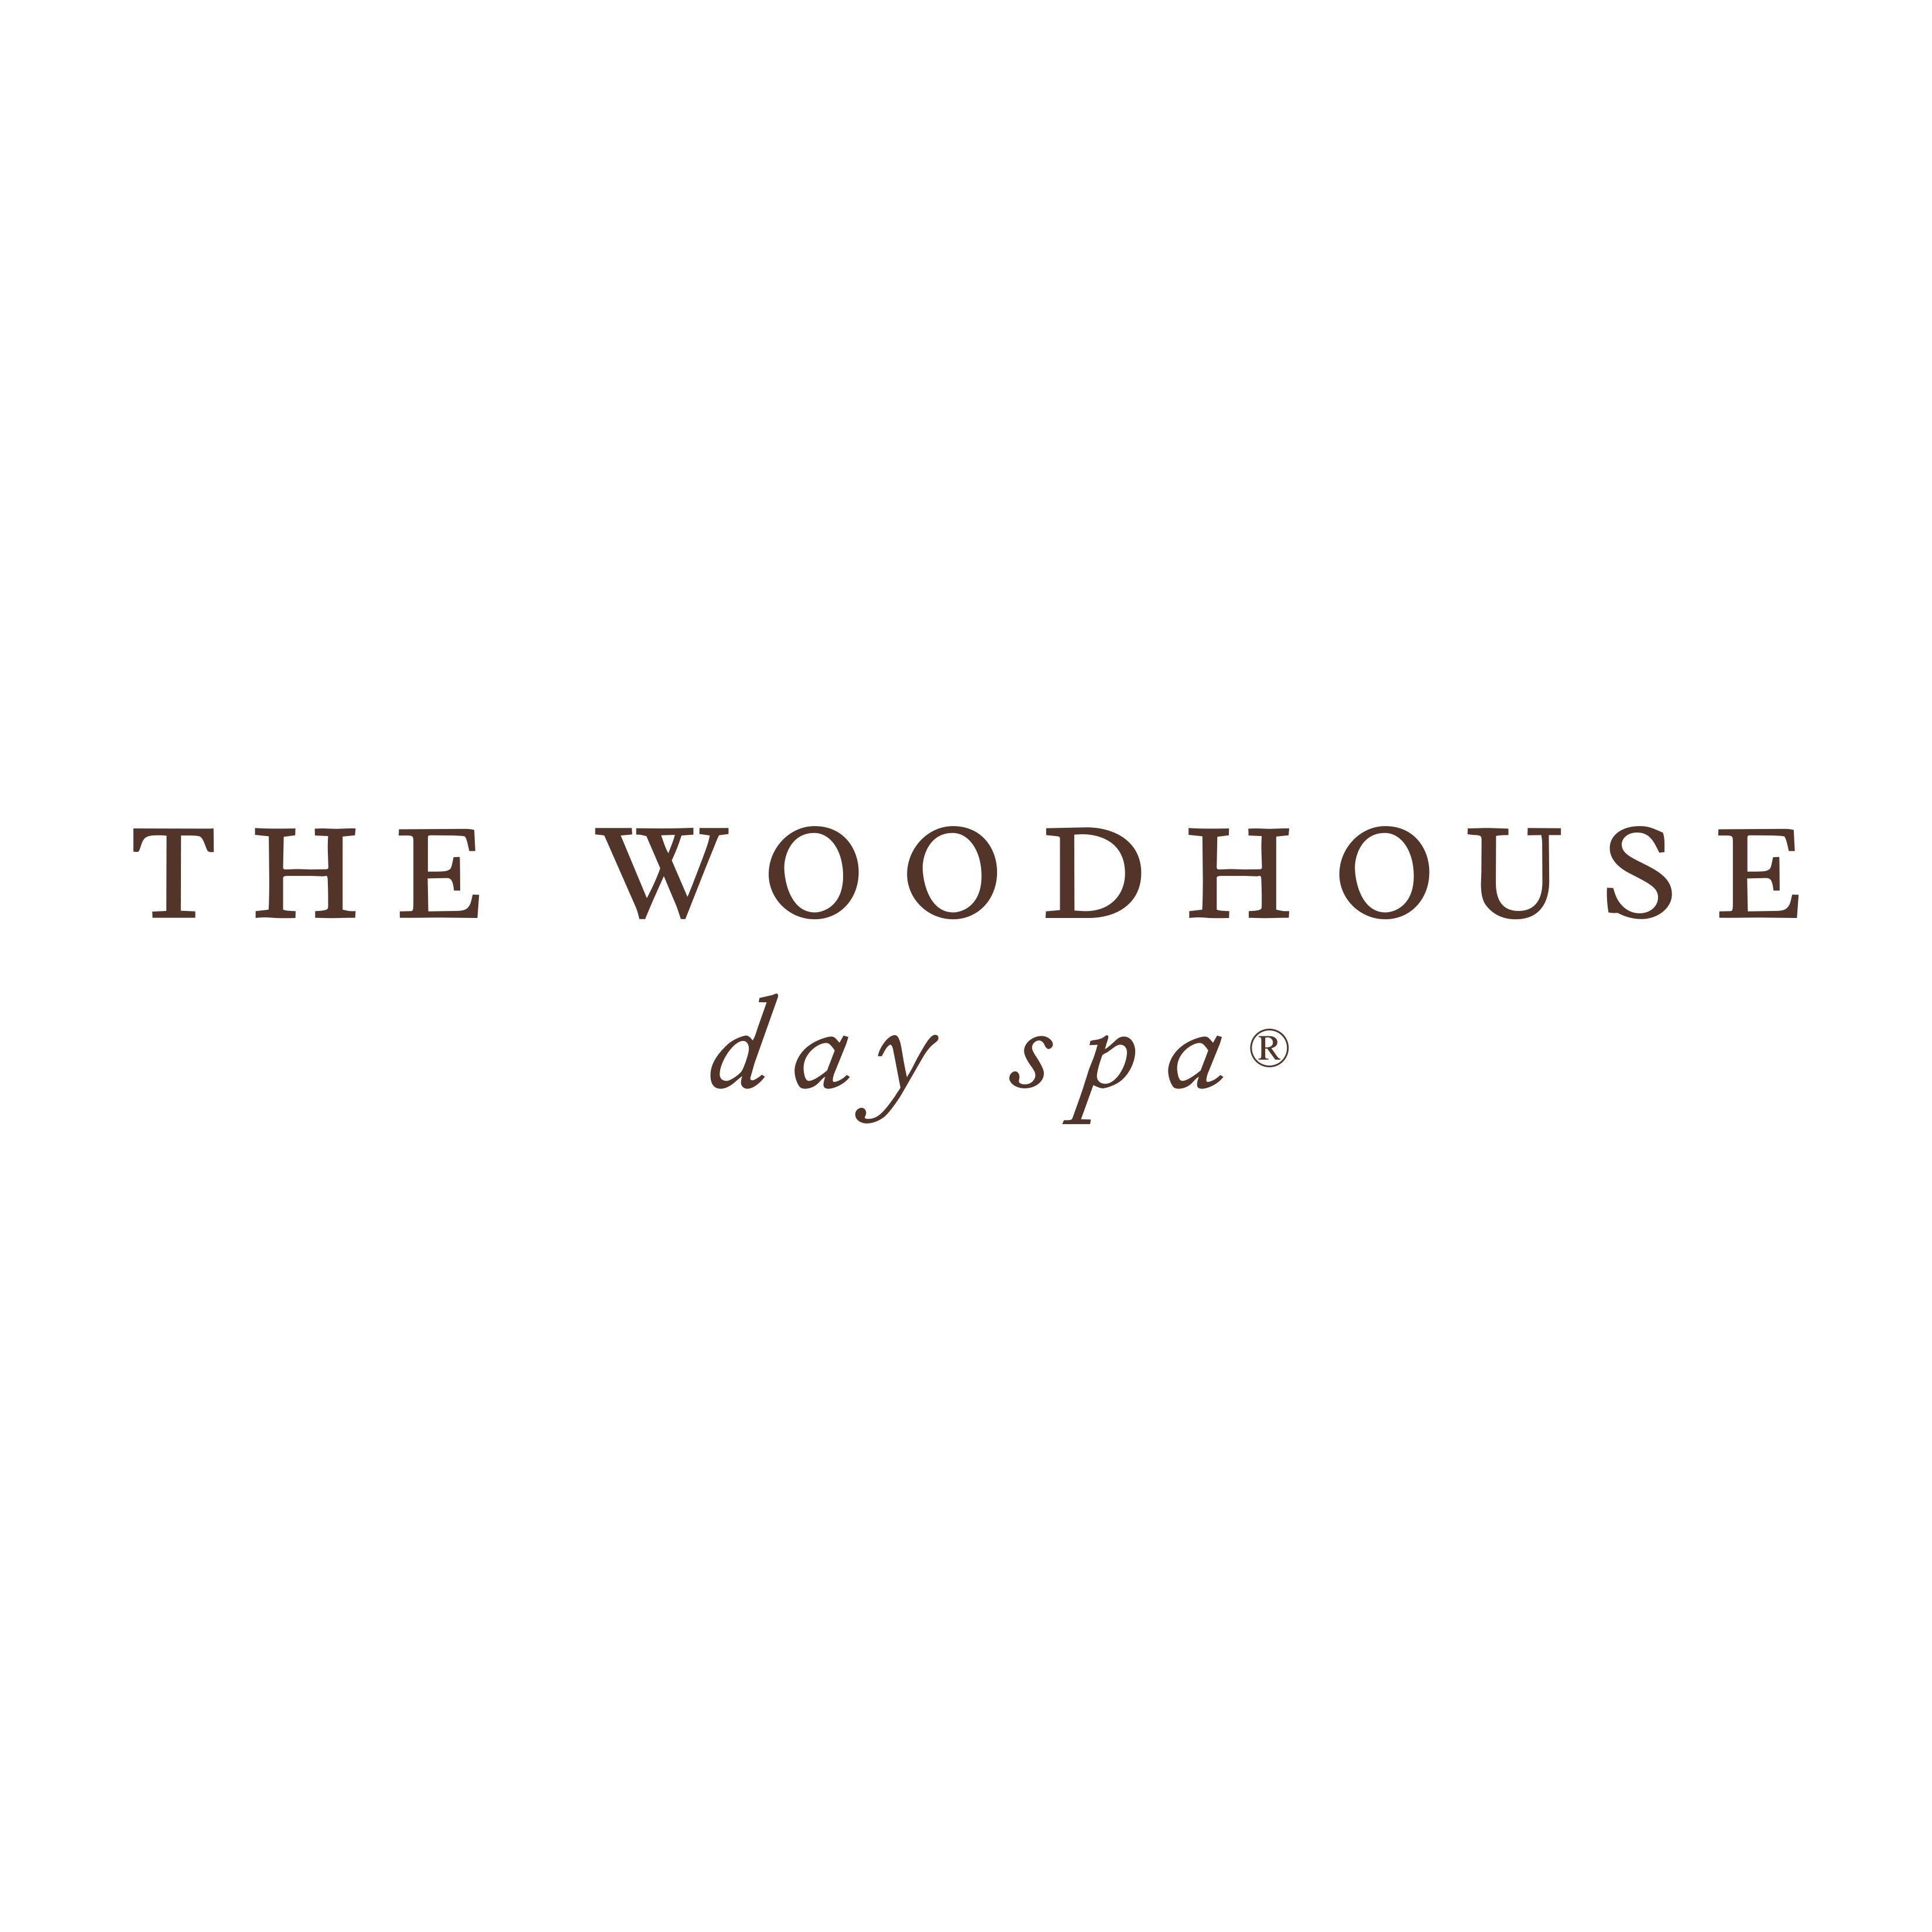 The Woodhouse Day Spa - Vintage